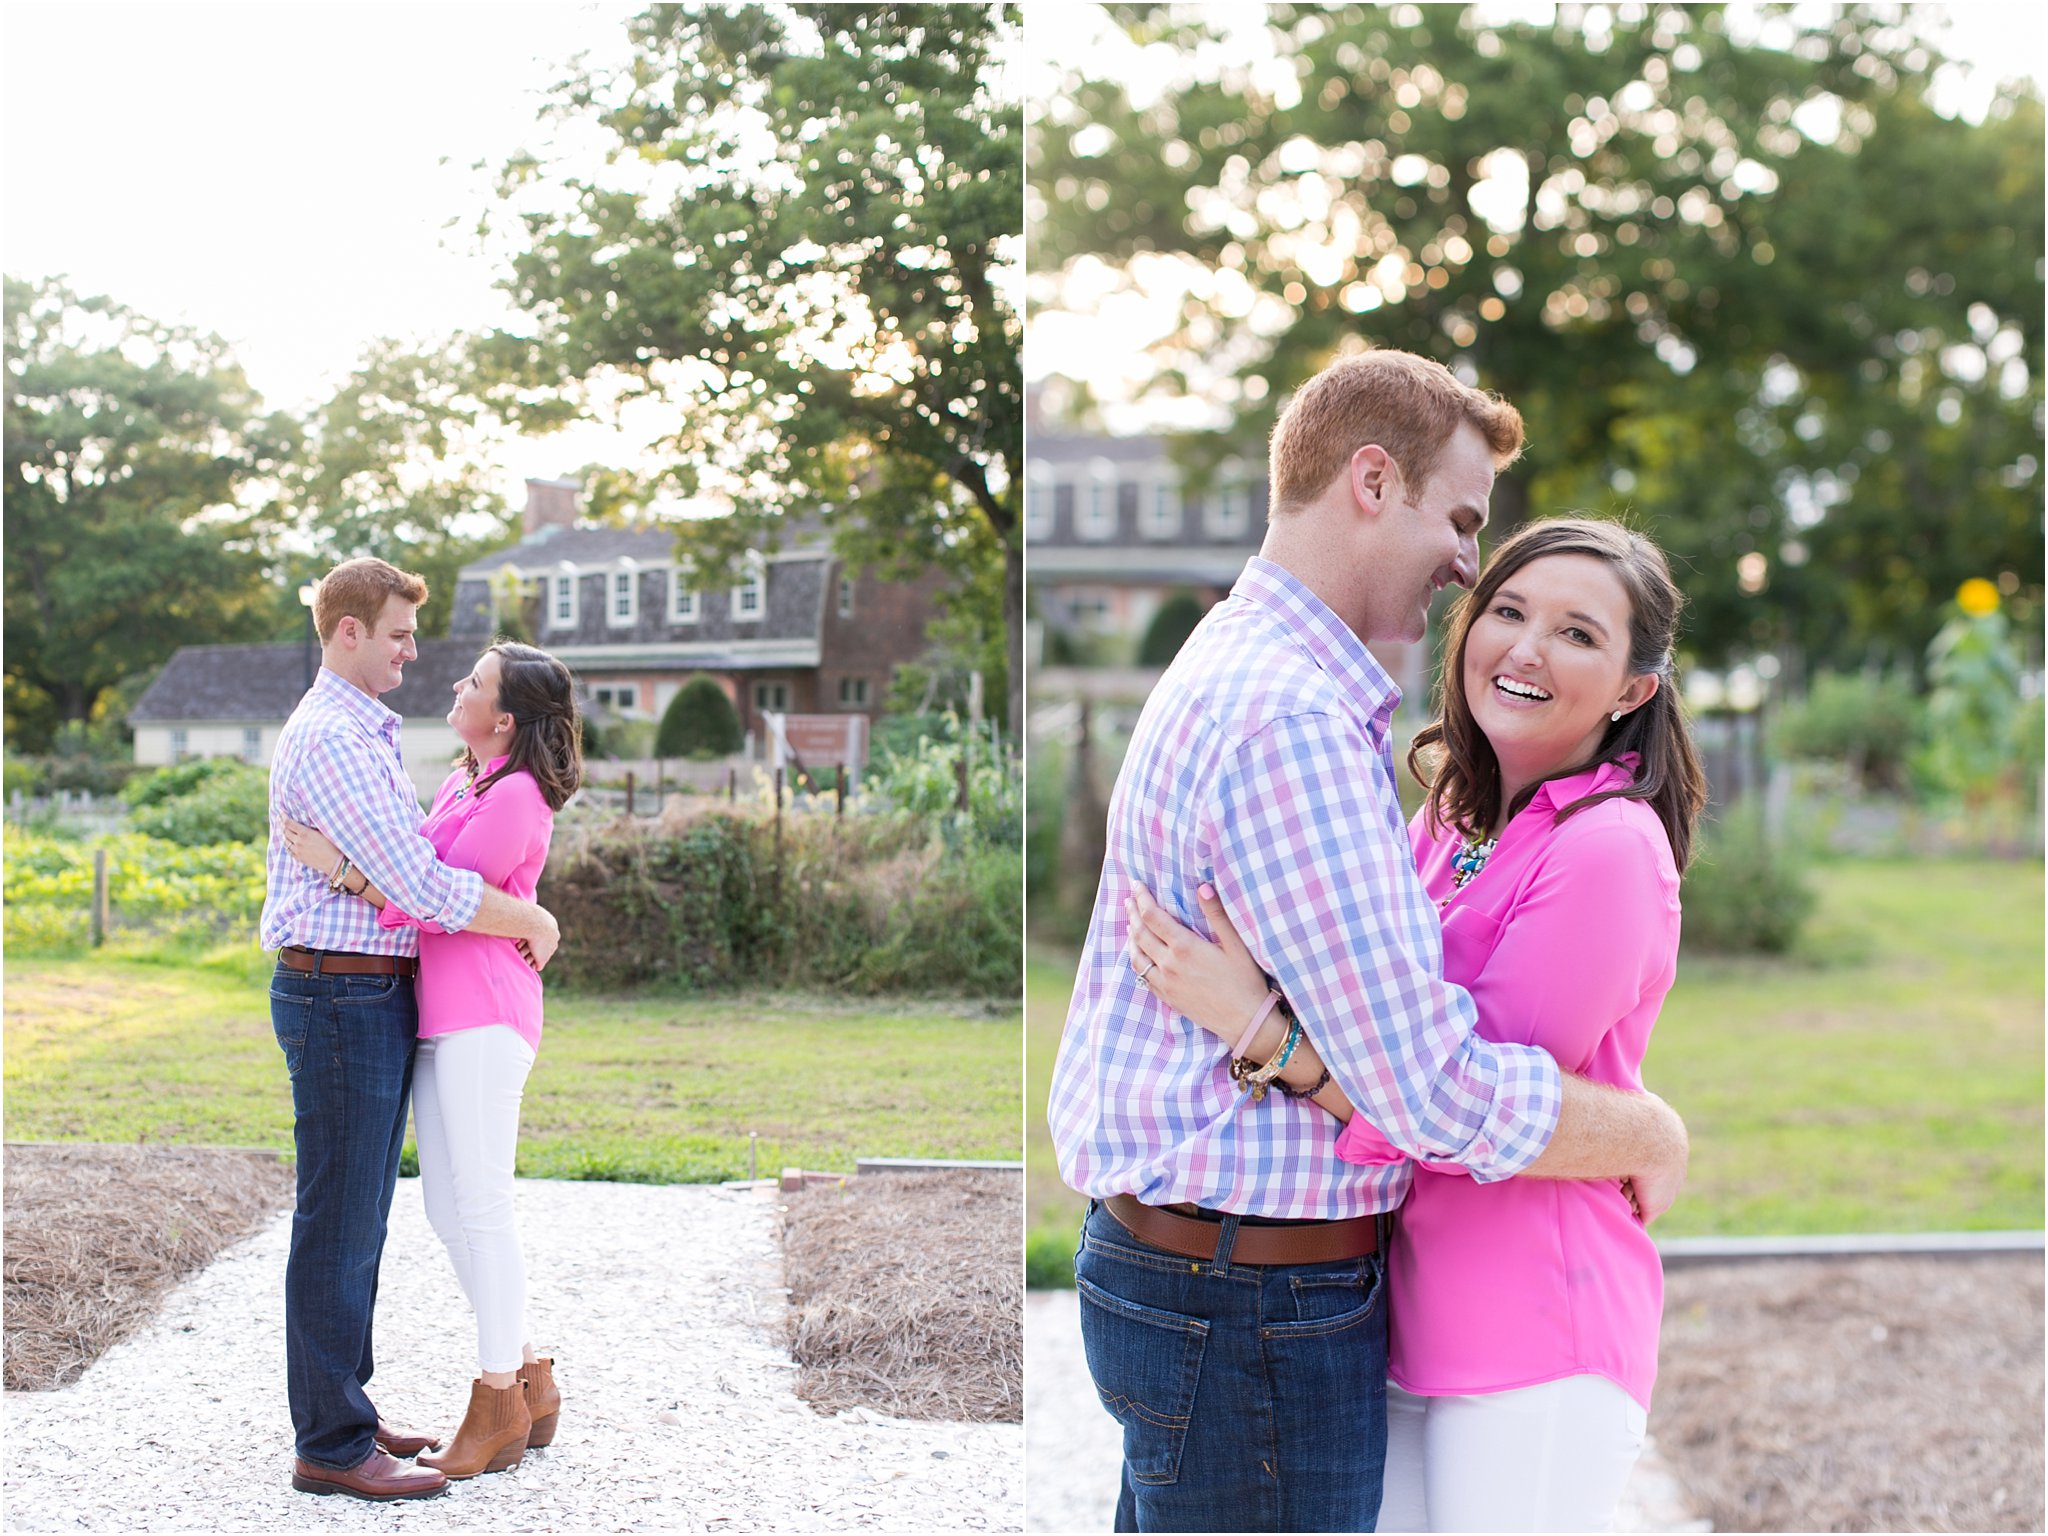 jessica_ryan_photography_virginia_virginia_beach_francis_land_house__portraits_bride_and_groom_beloved_historical_home_engagement_portraits_candid_authentic_engagements_2729